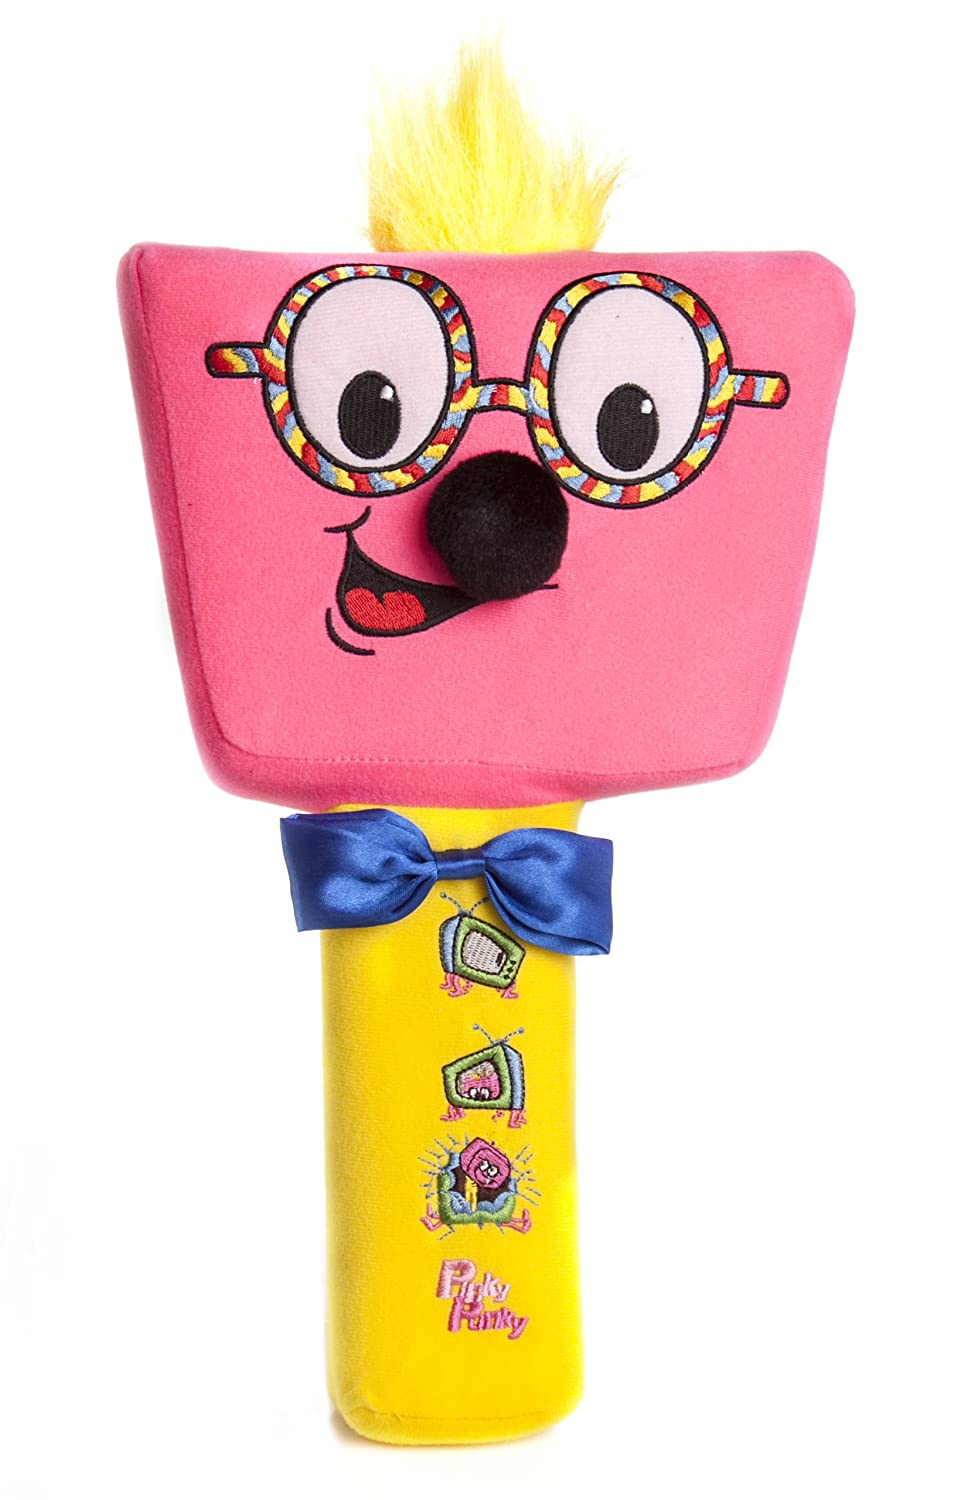 Pinky Punky (Mallett's Mallet). If you grew up watching Wacaday or The Wide Awake Club then you may have had the urge to hit Timmy Mallett over the head with his own mallet! You can now, at least, hit anyone who annoys you over the head with this official Mallet's Mallet!